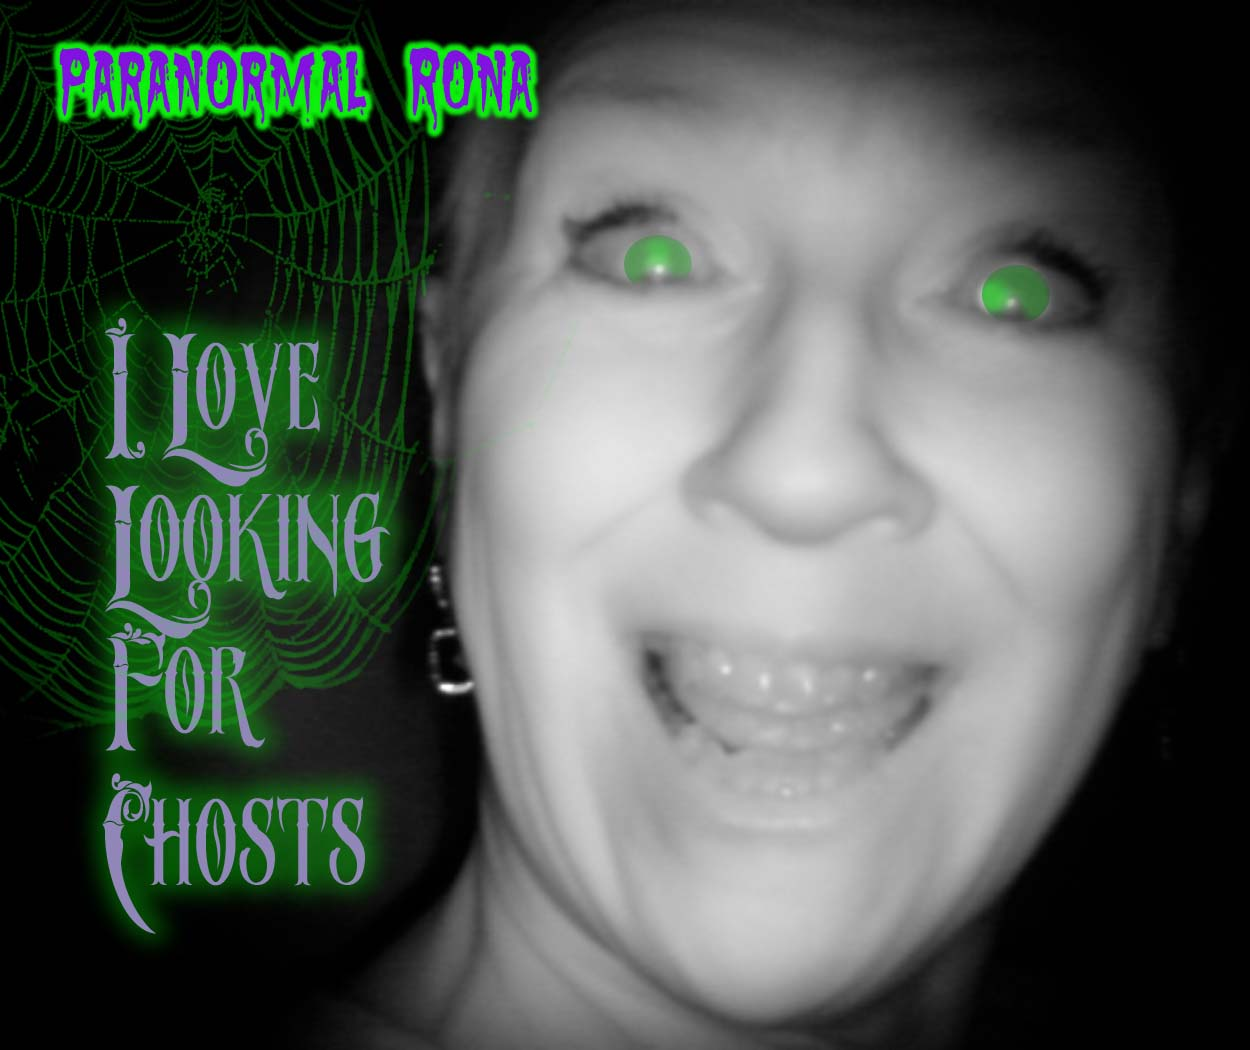 Paranormal Rona Is NOT Afraid Of Spirits/Ghosts/Manifestations!!!